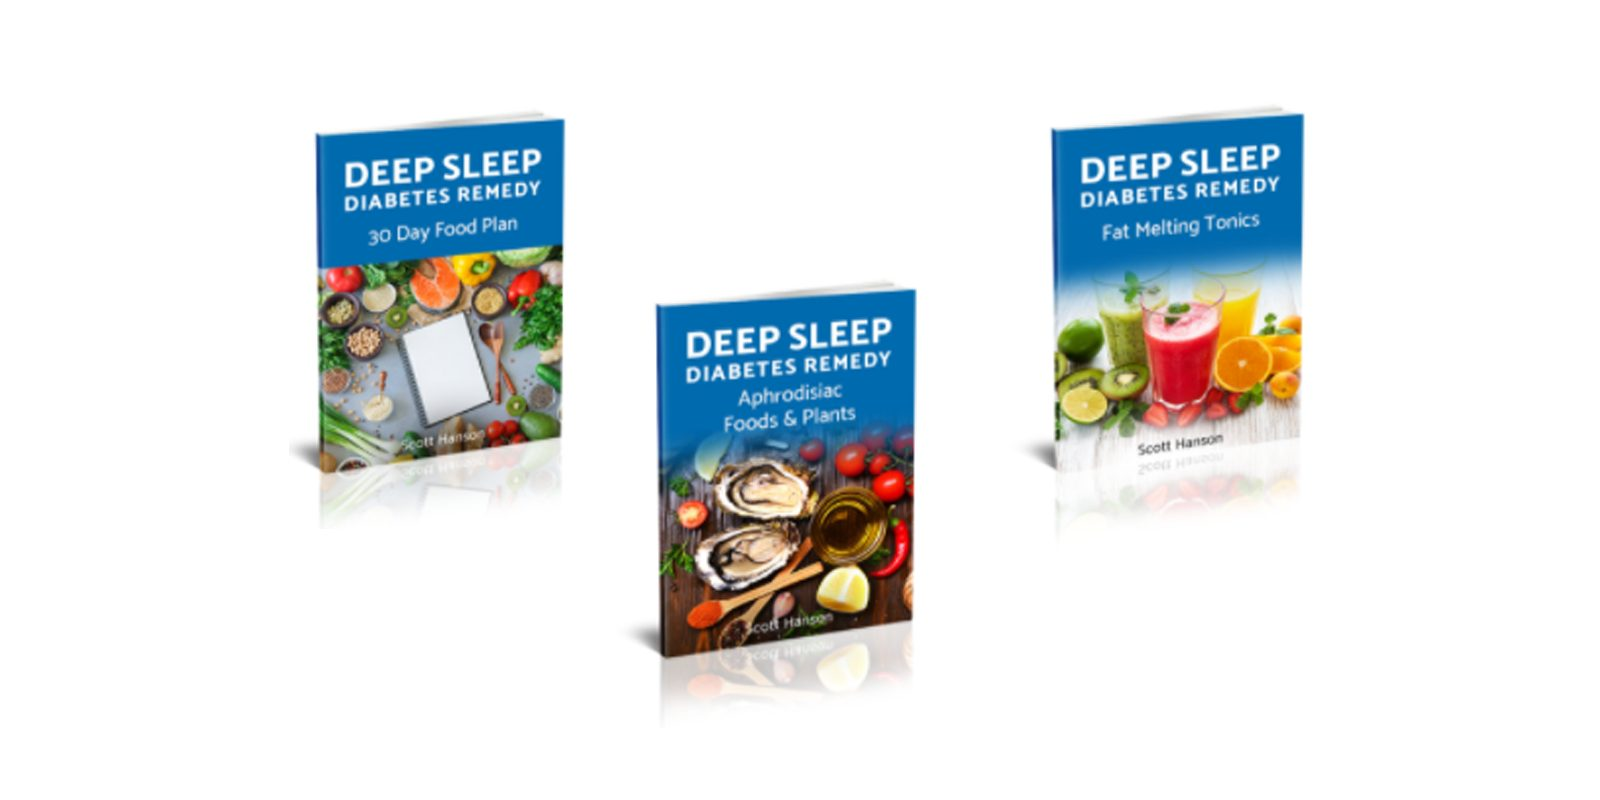 Deep Sleep Diabetes Remedy bonuses